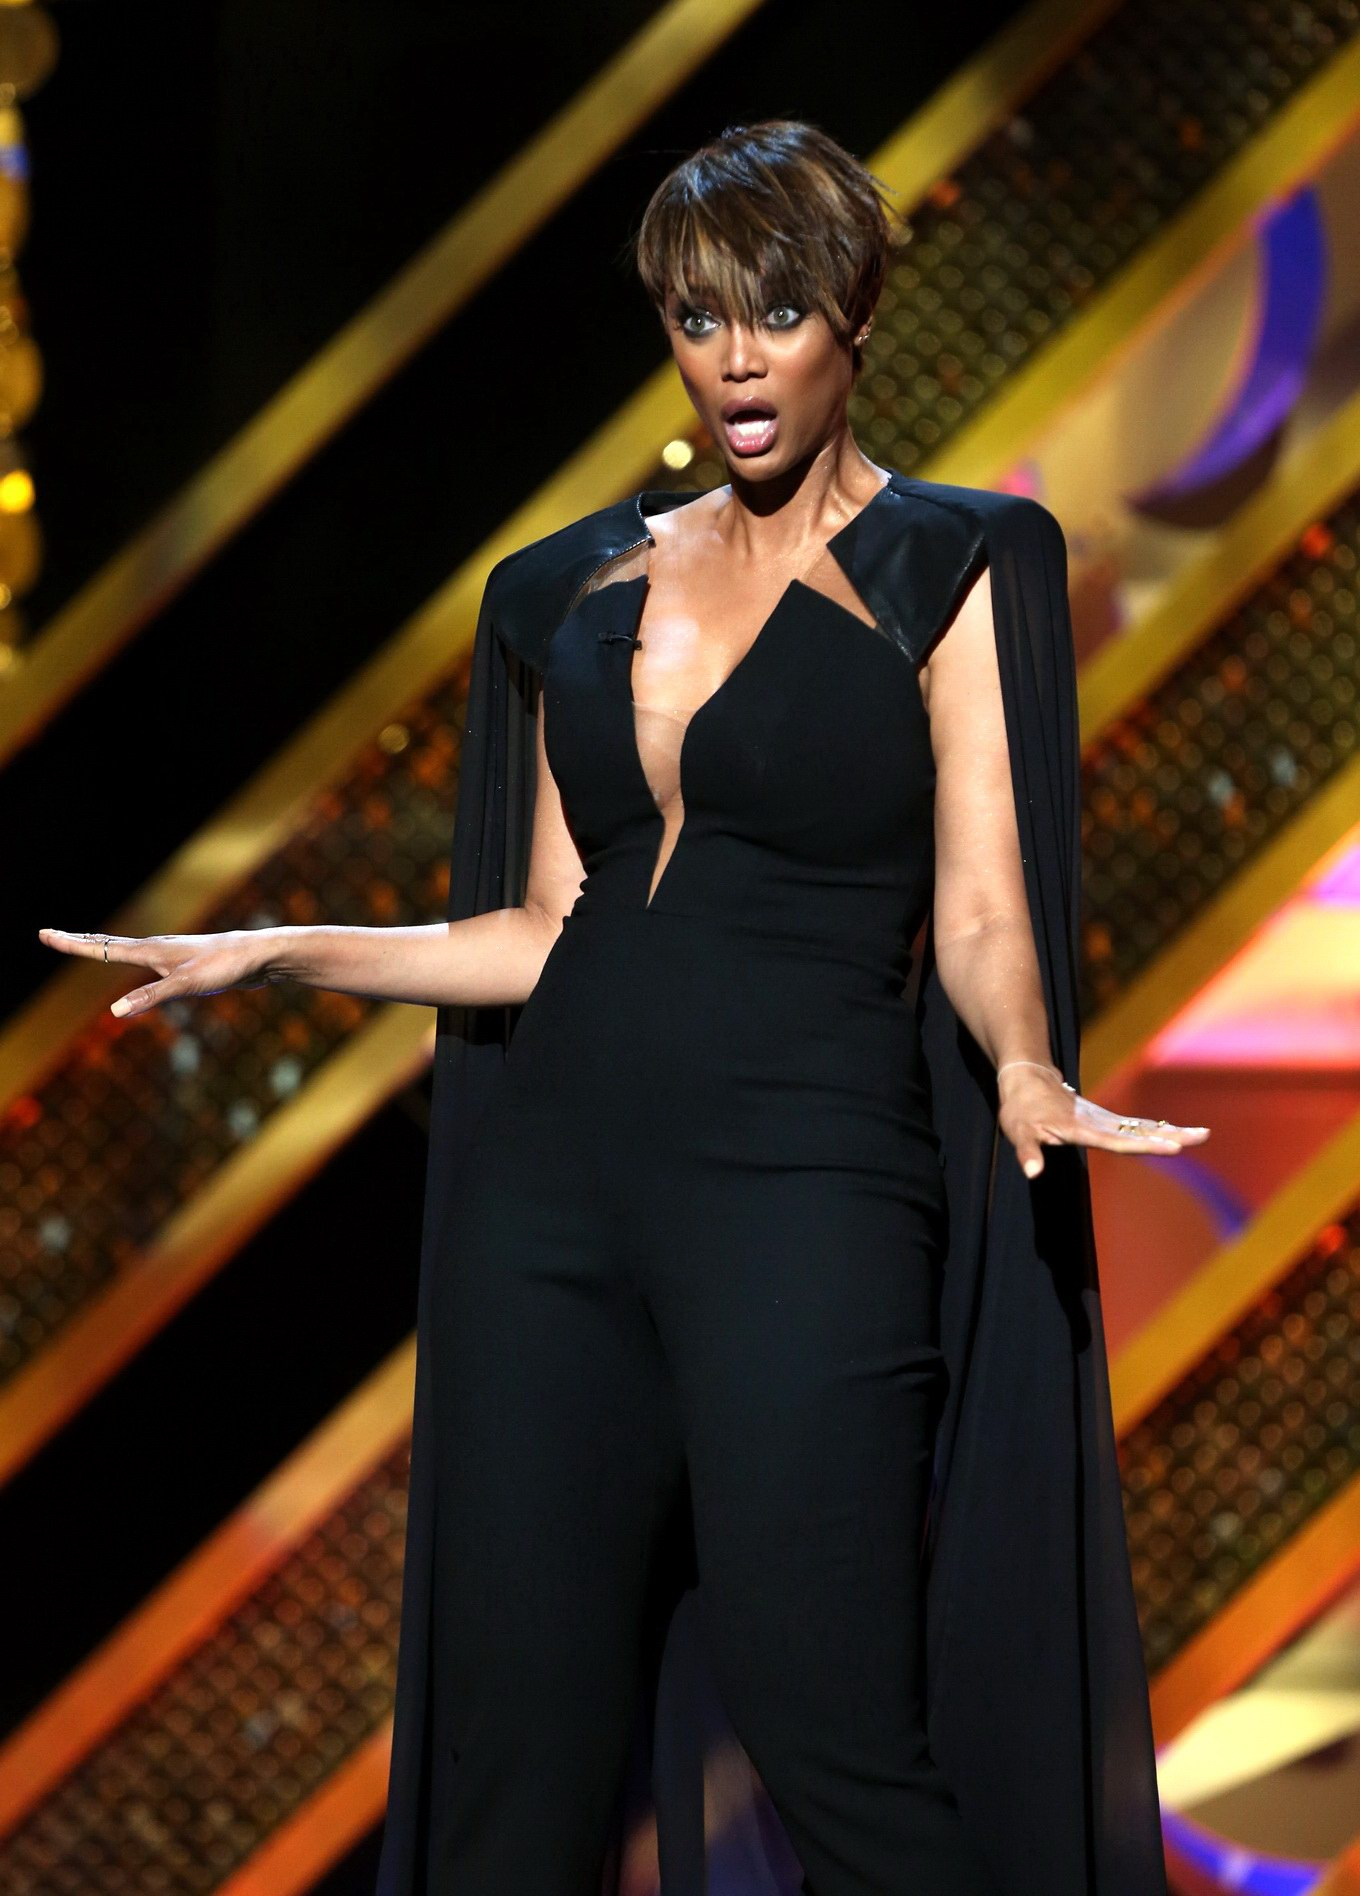 This awesome busty tyra banks very